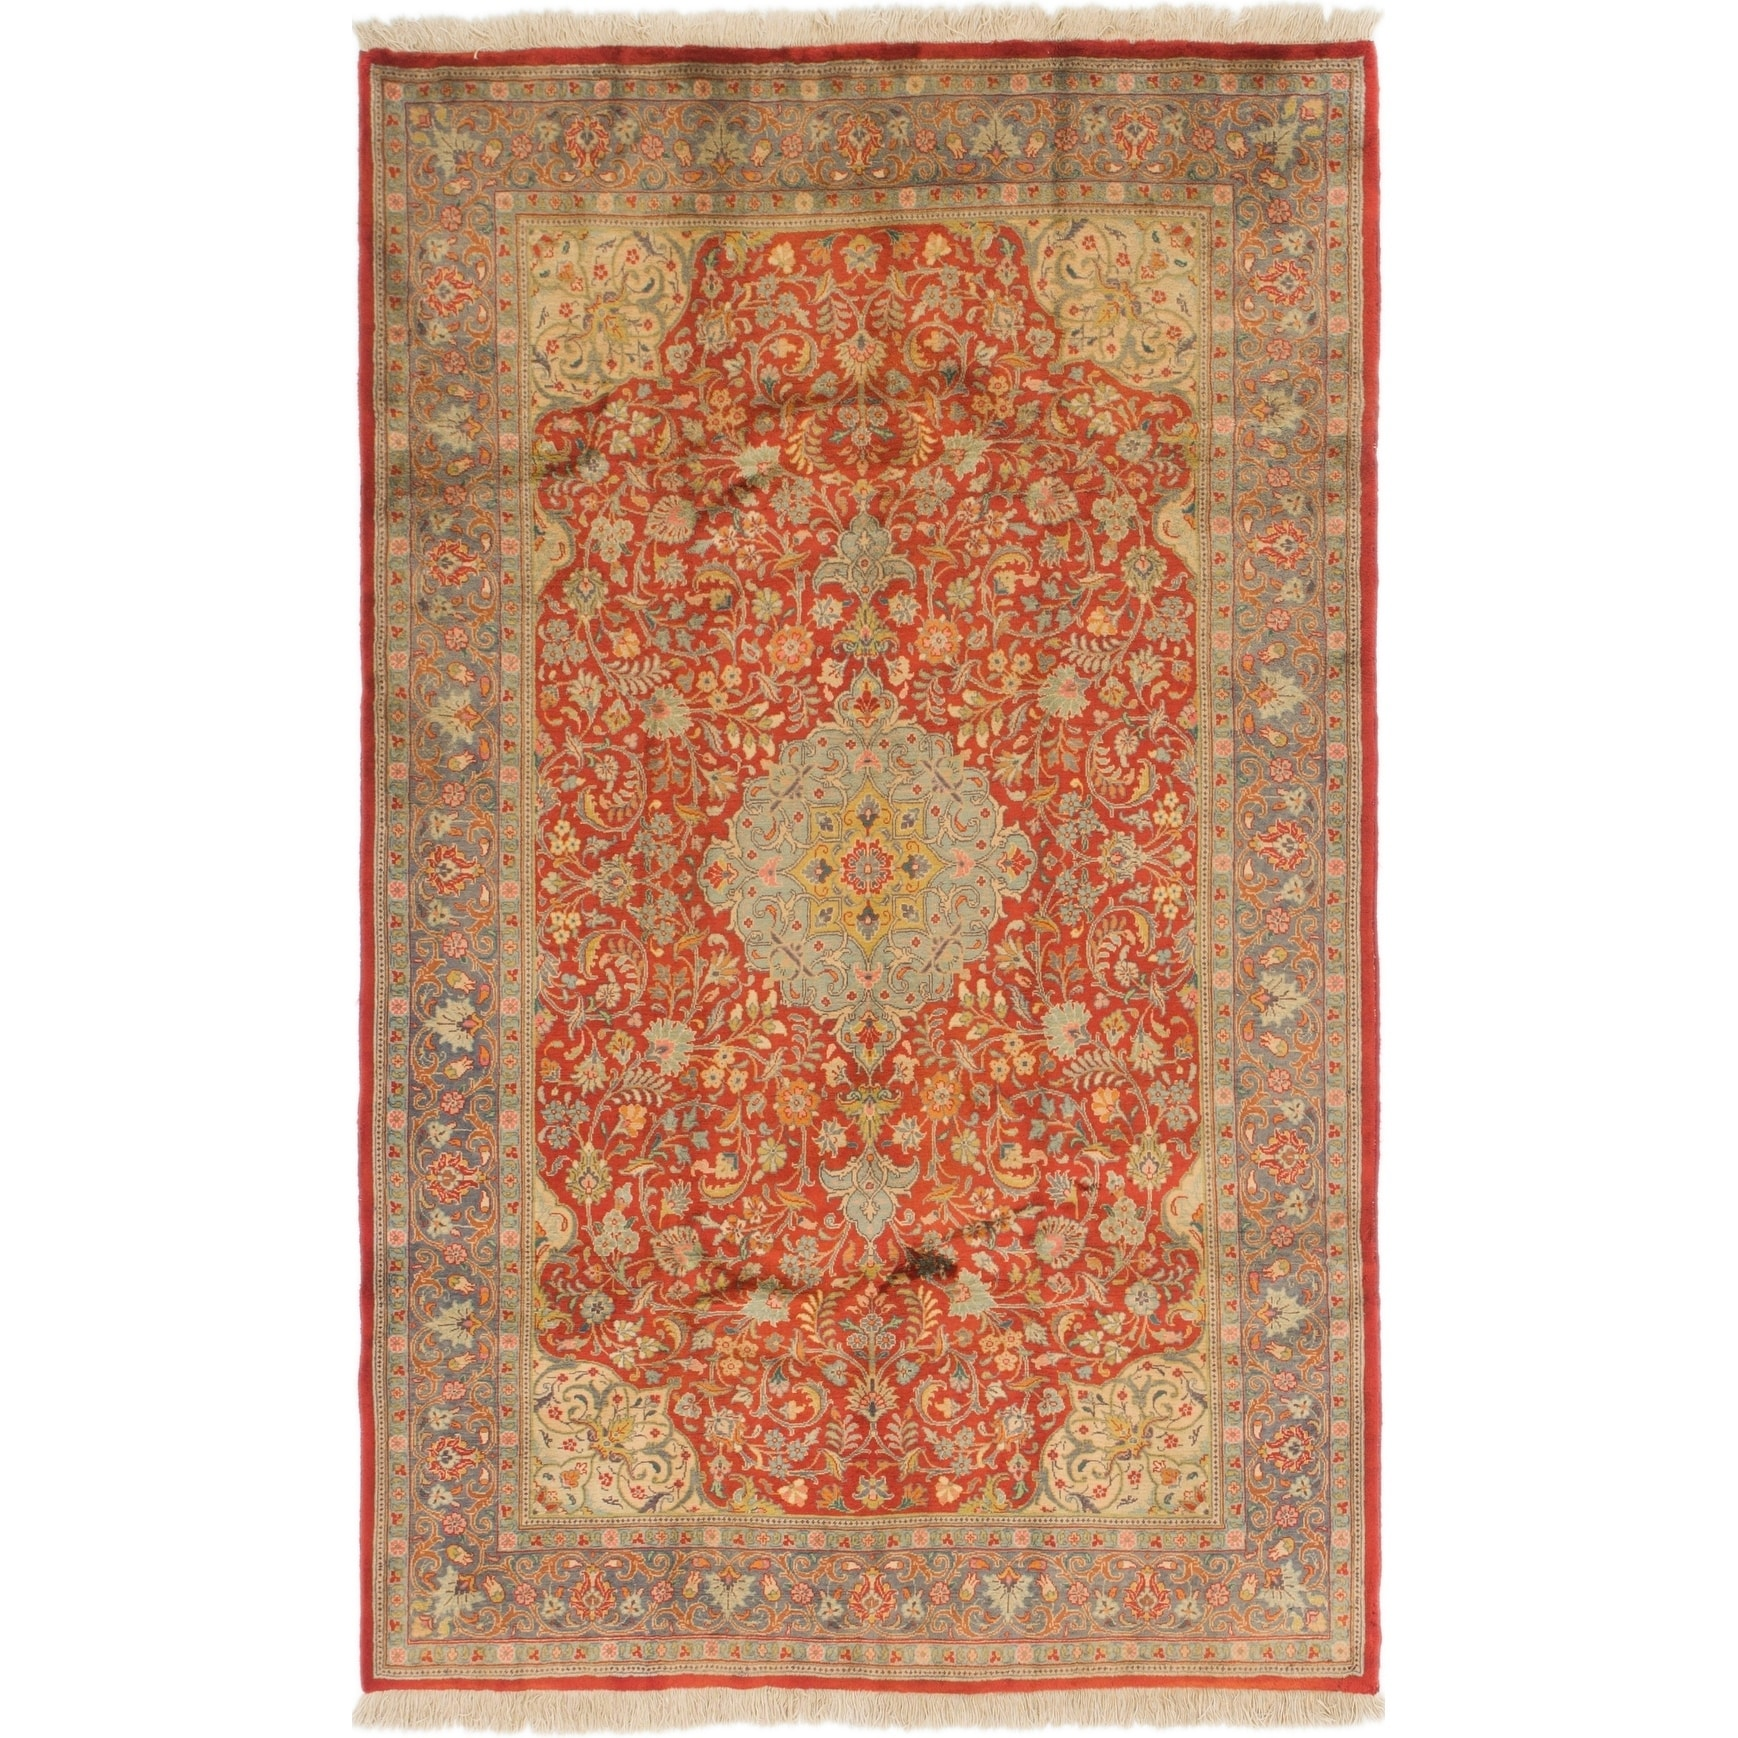 Hand Knotted Kashan Semi Antique Wool Area Rug - 5 x 8 (Red - 5 x 8)